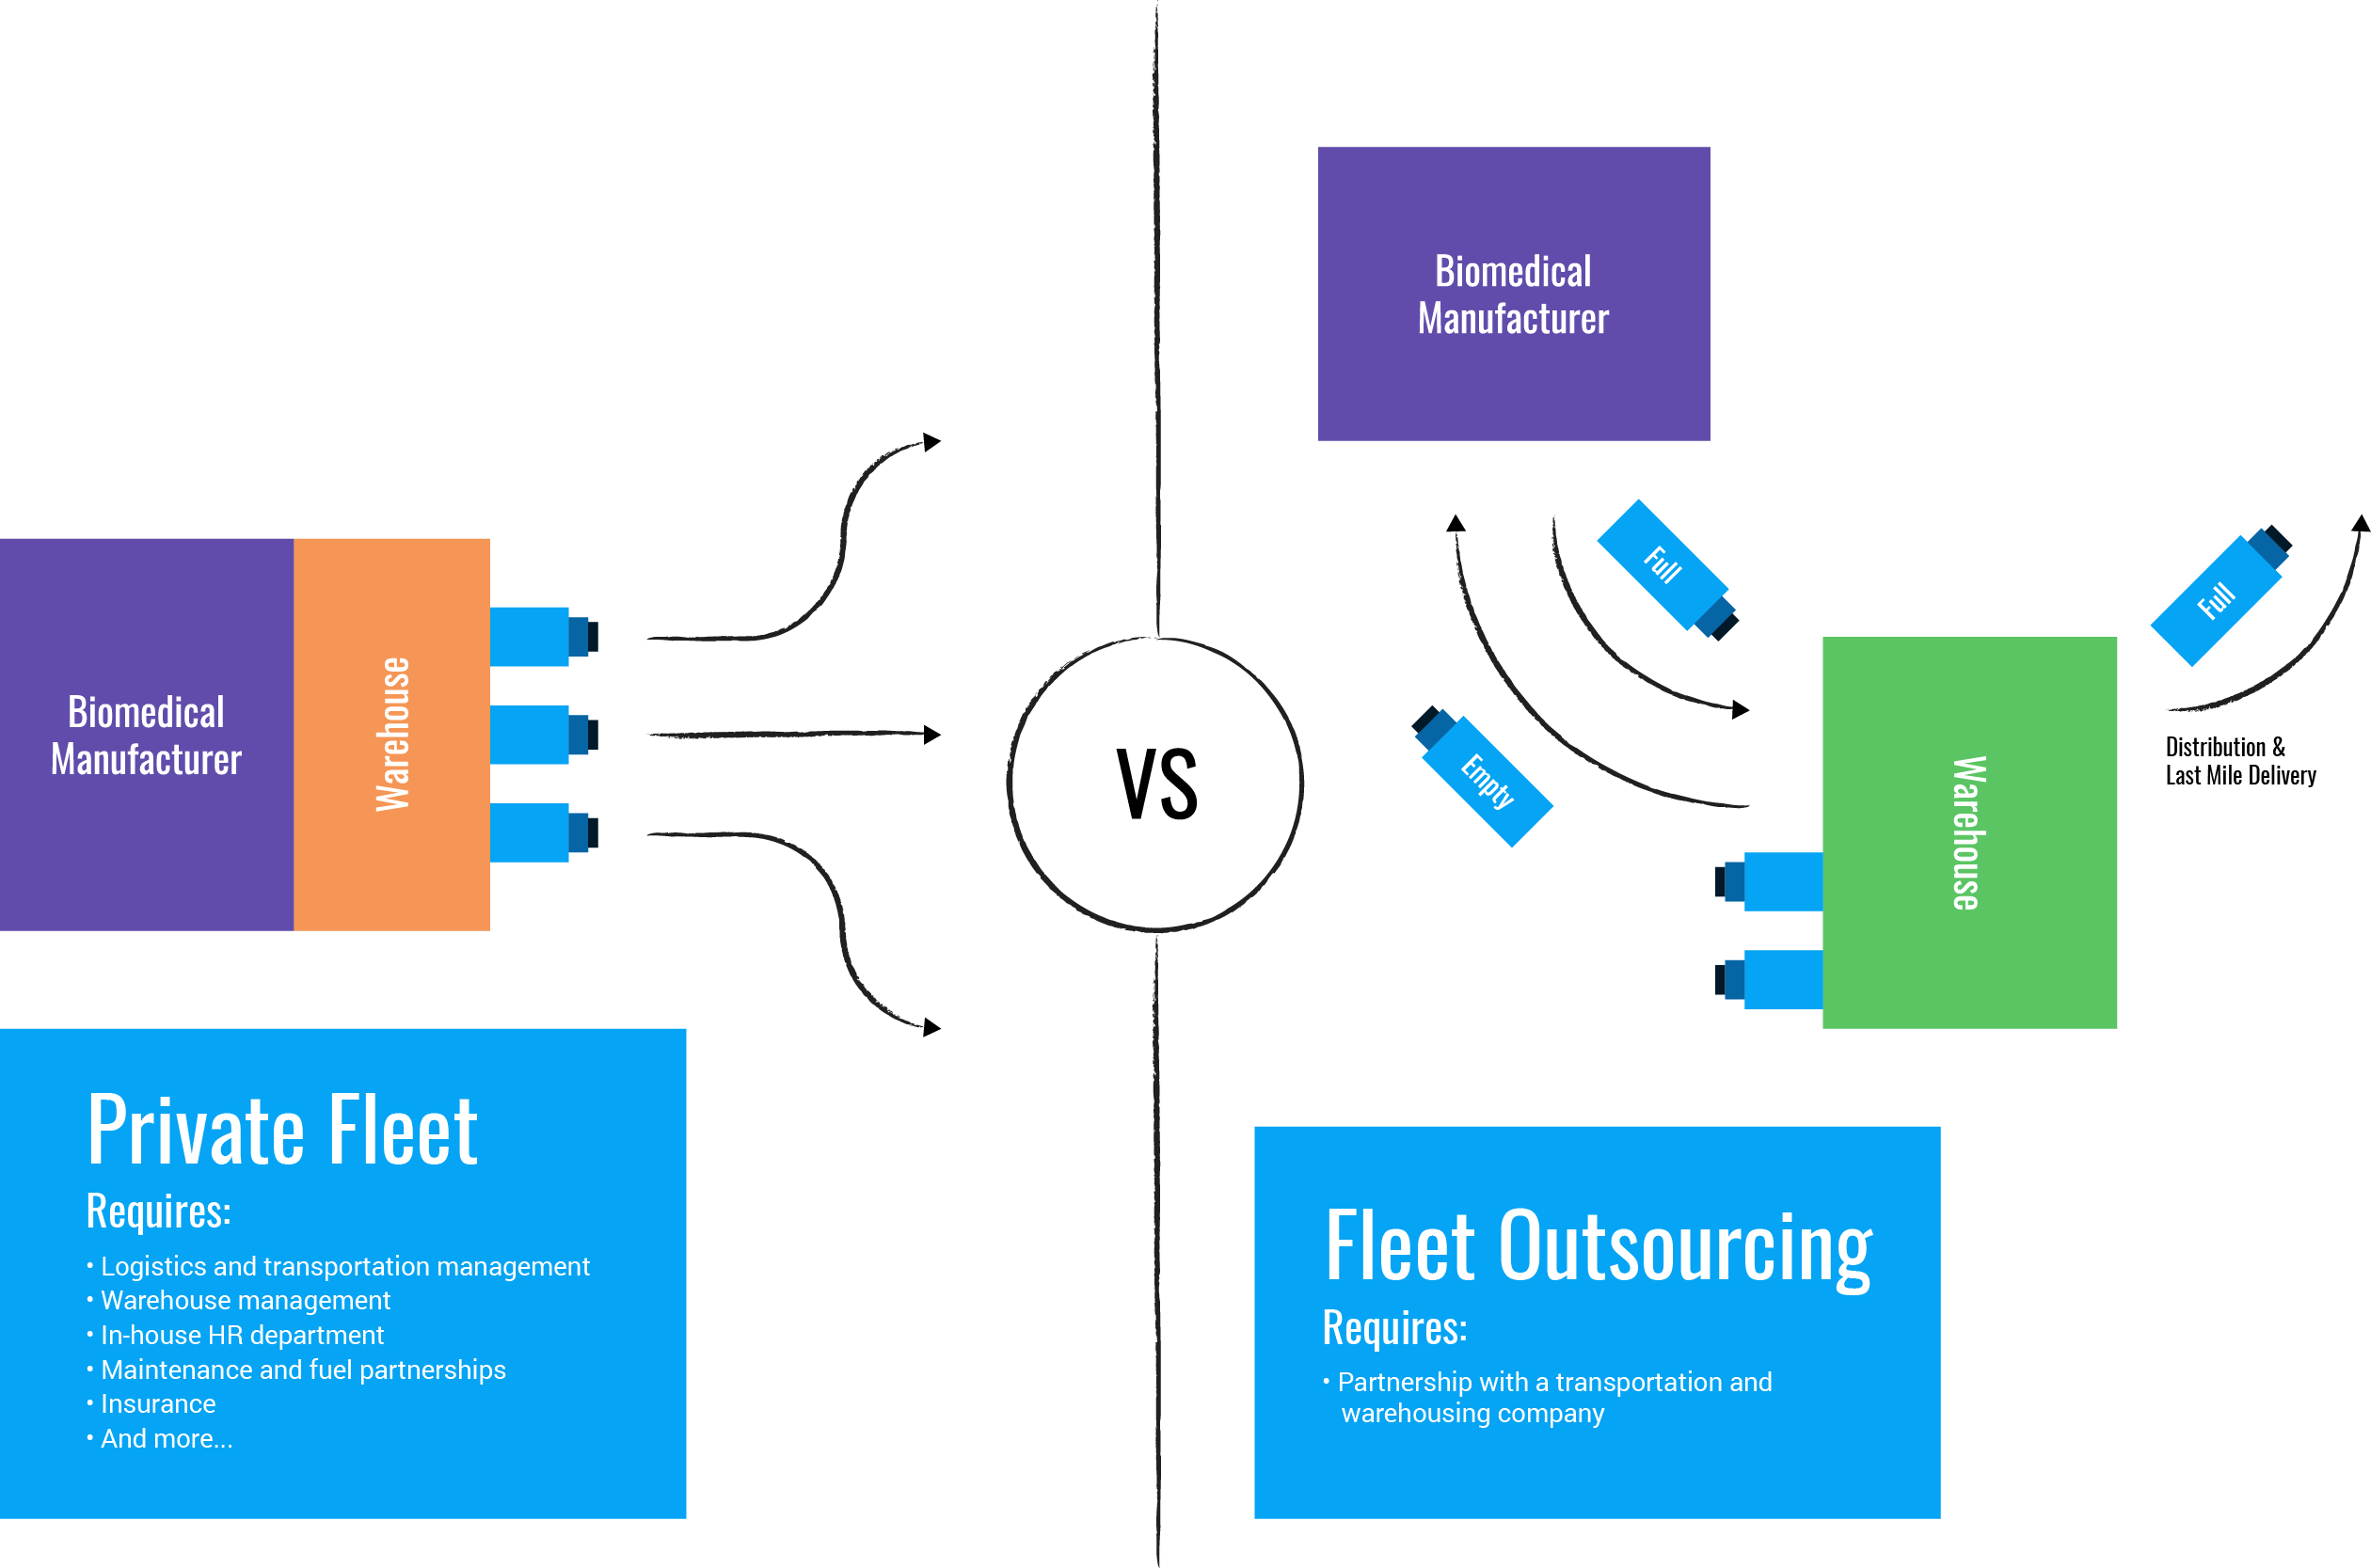 private fleet vs fleet outsourcing graphic